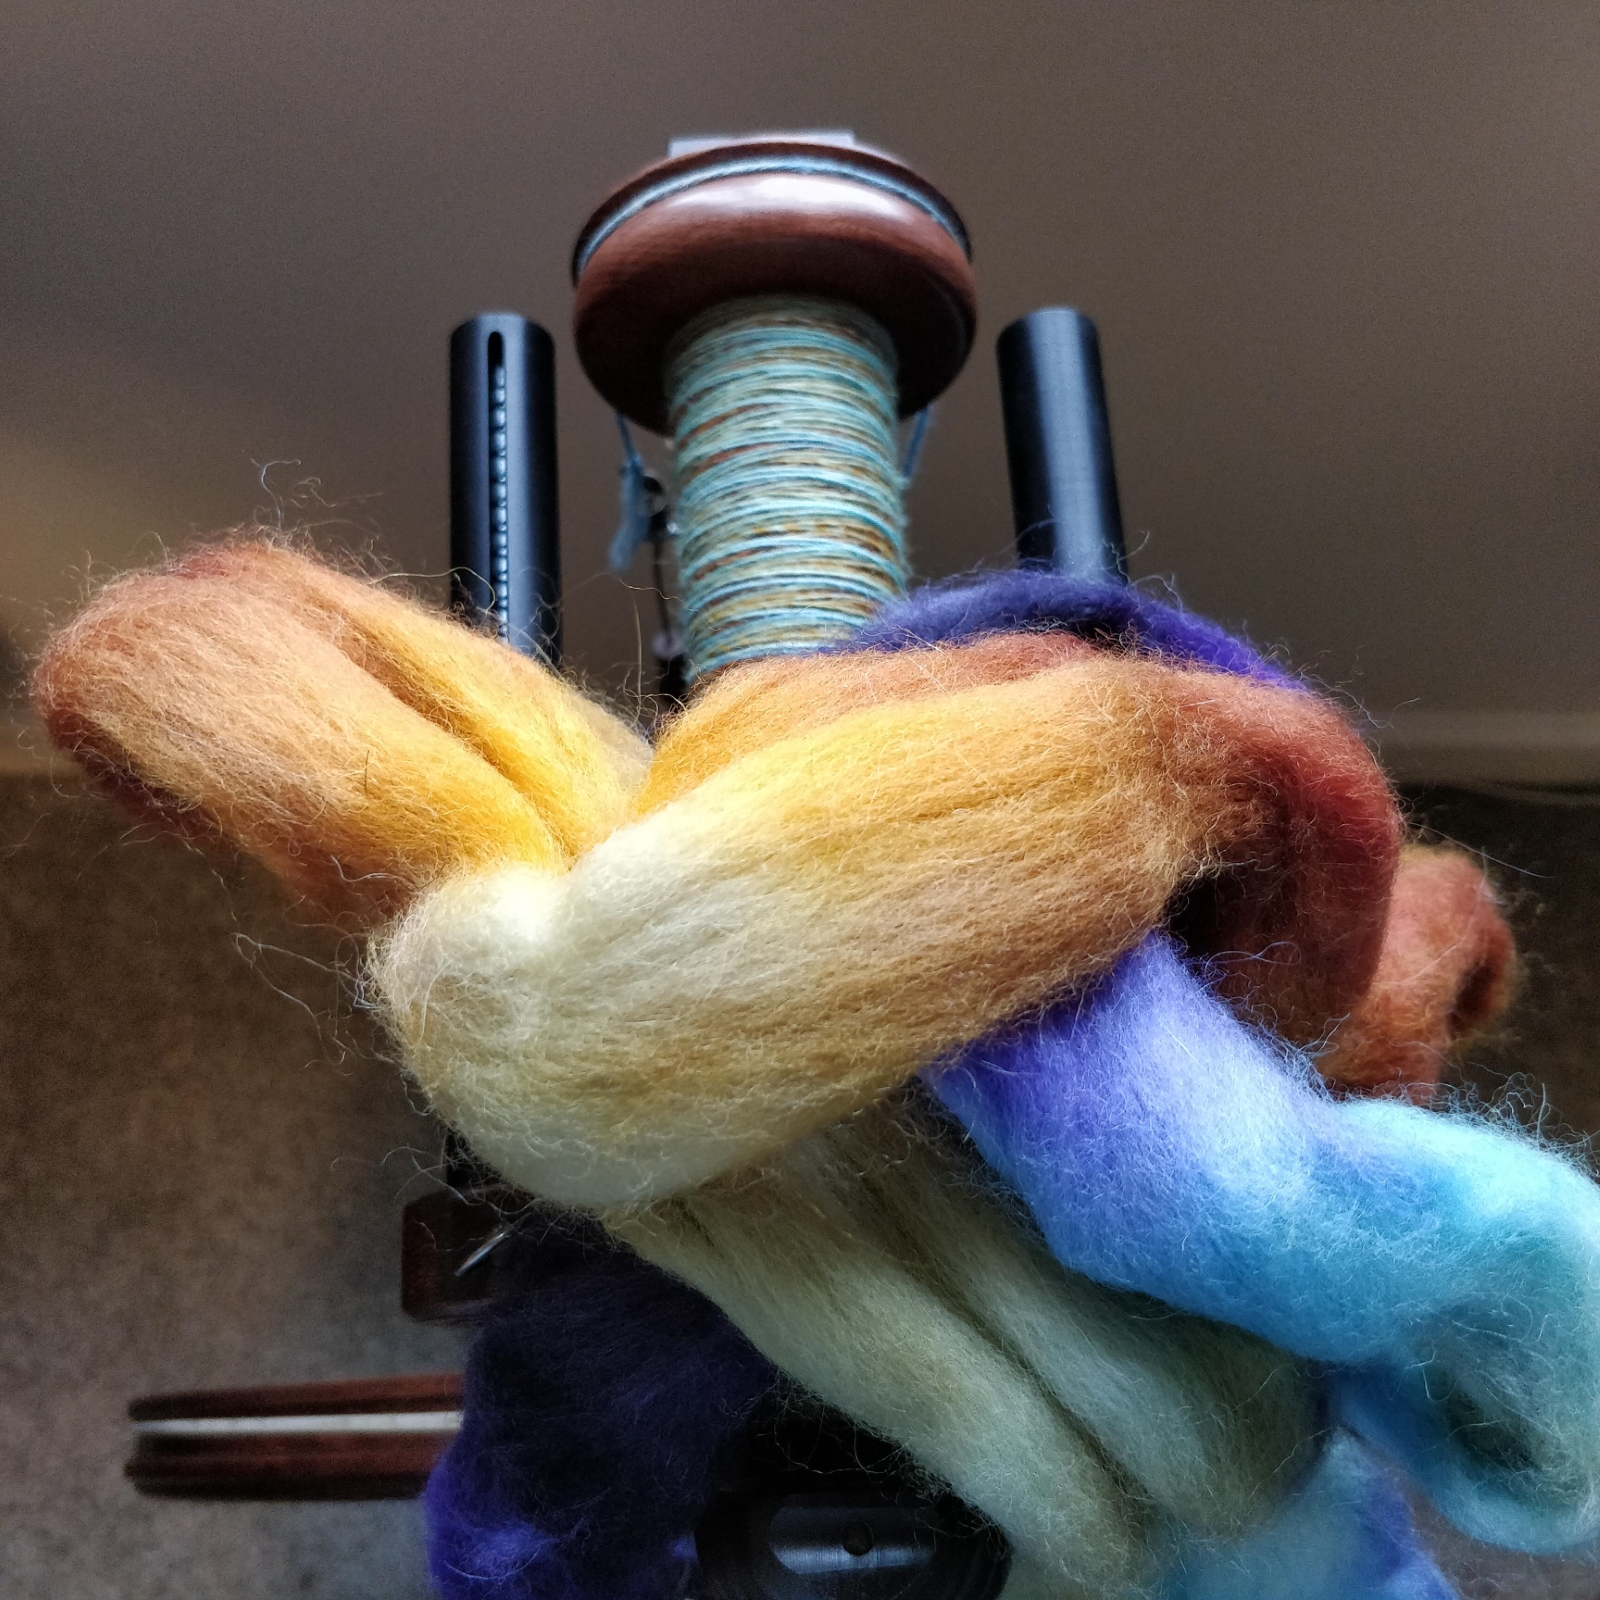 Unspun fibre in vibrant yellows and tans, greens and blues and purples, is piled on top of a partially full bobbin of singles.